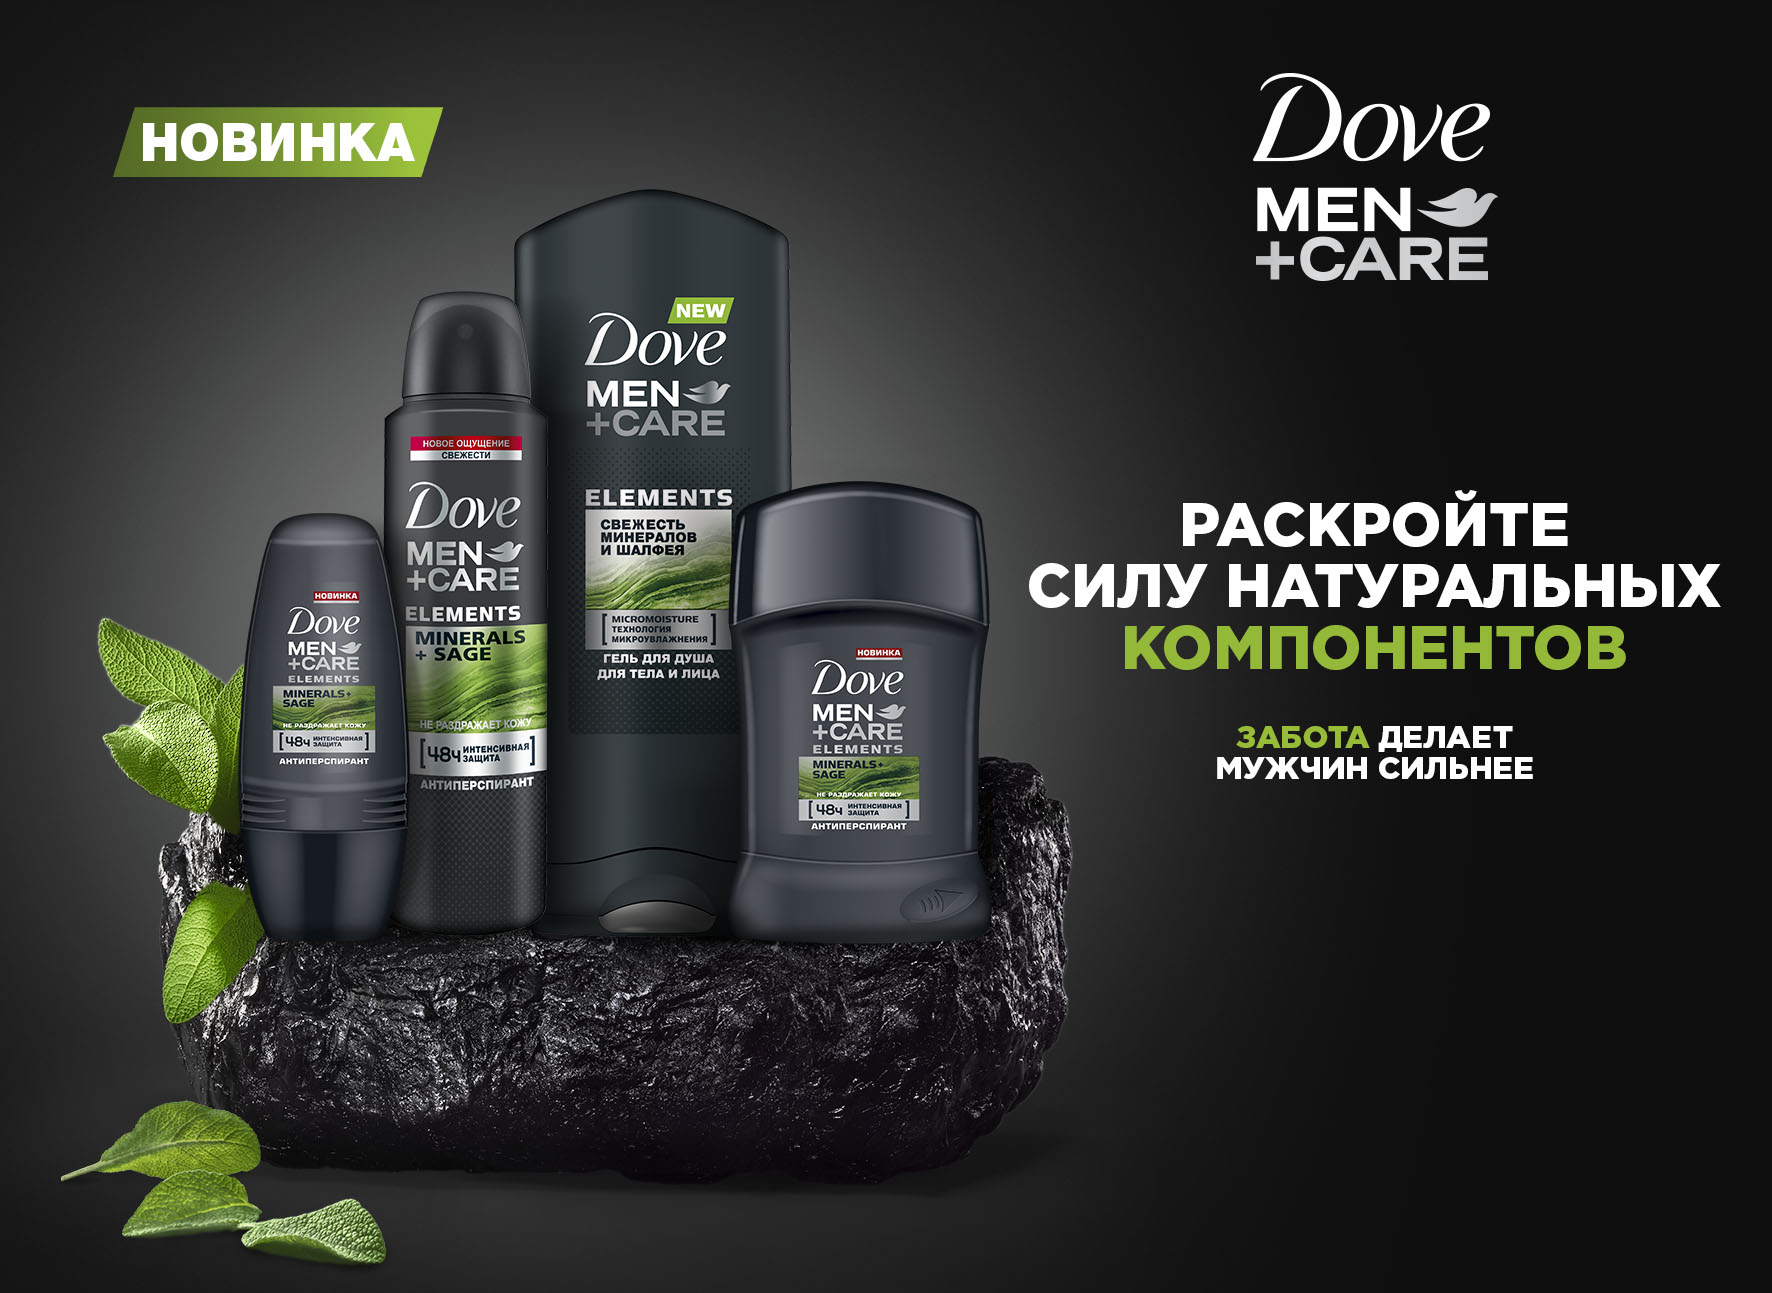 215337_DOVE_Men+Care_BODYWASH_MASTER_KV_LandScape.indd